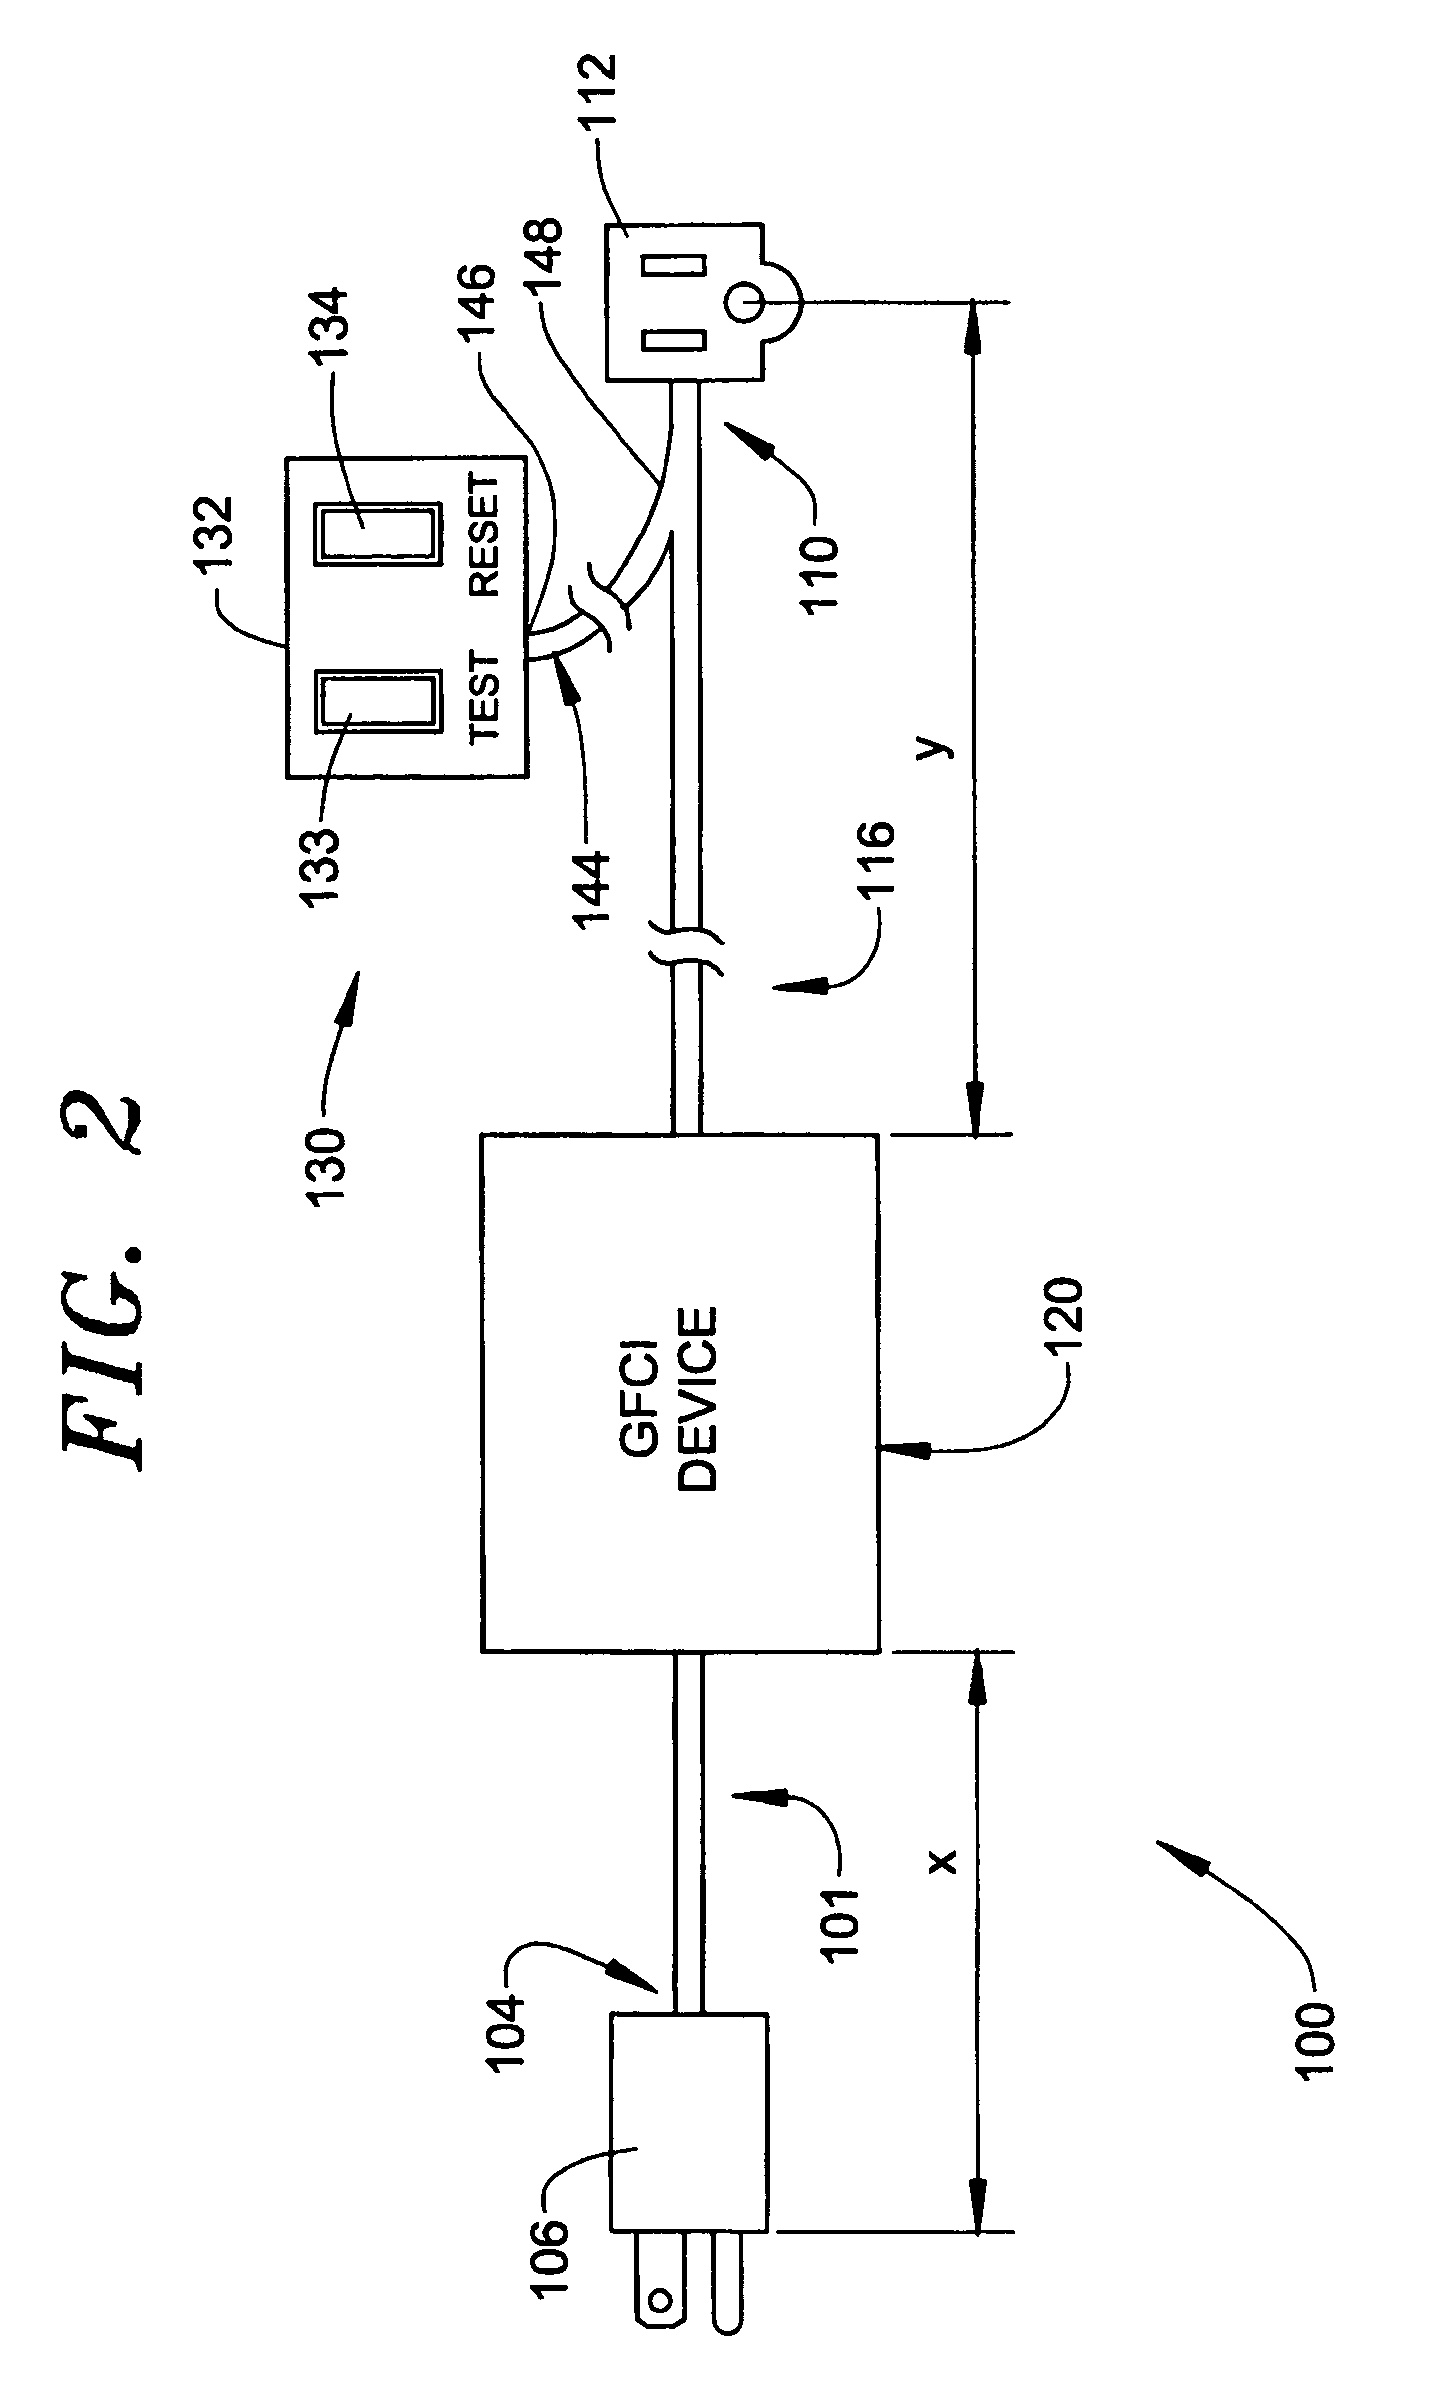 Patent Us7869168 Power Cord With Gfci Device And Remote Test Reset Wiring Multiple Outlets Diagram Furthermore 20 Outlet Drawing